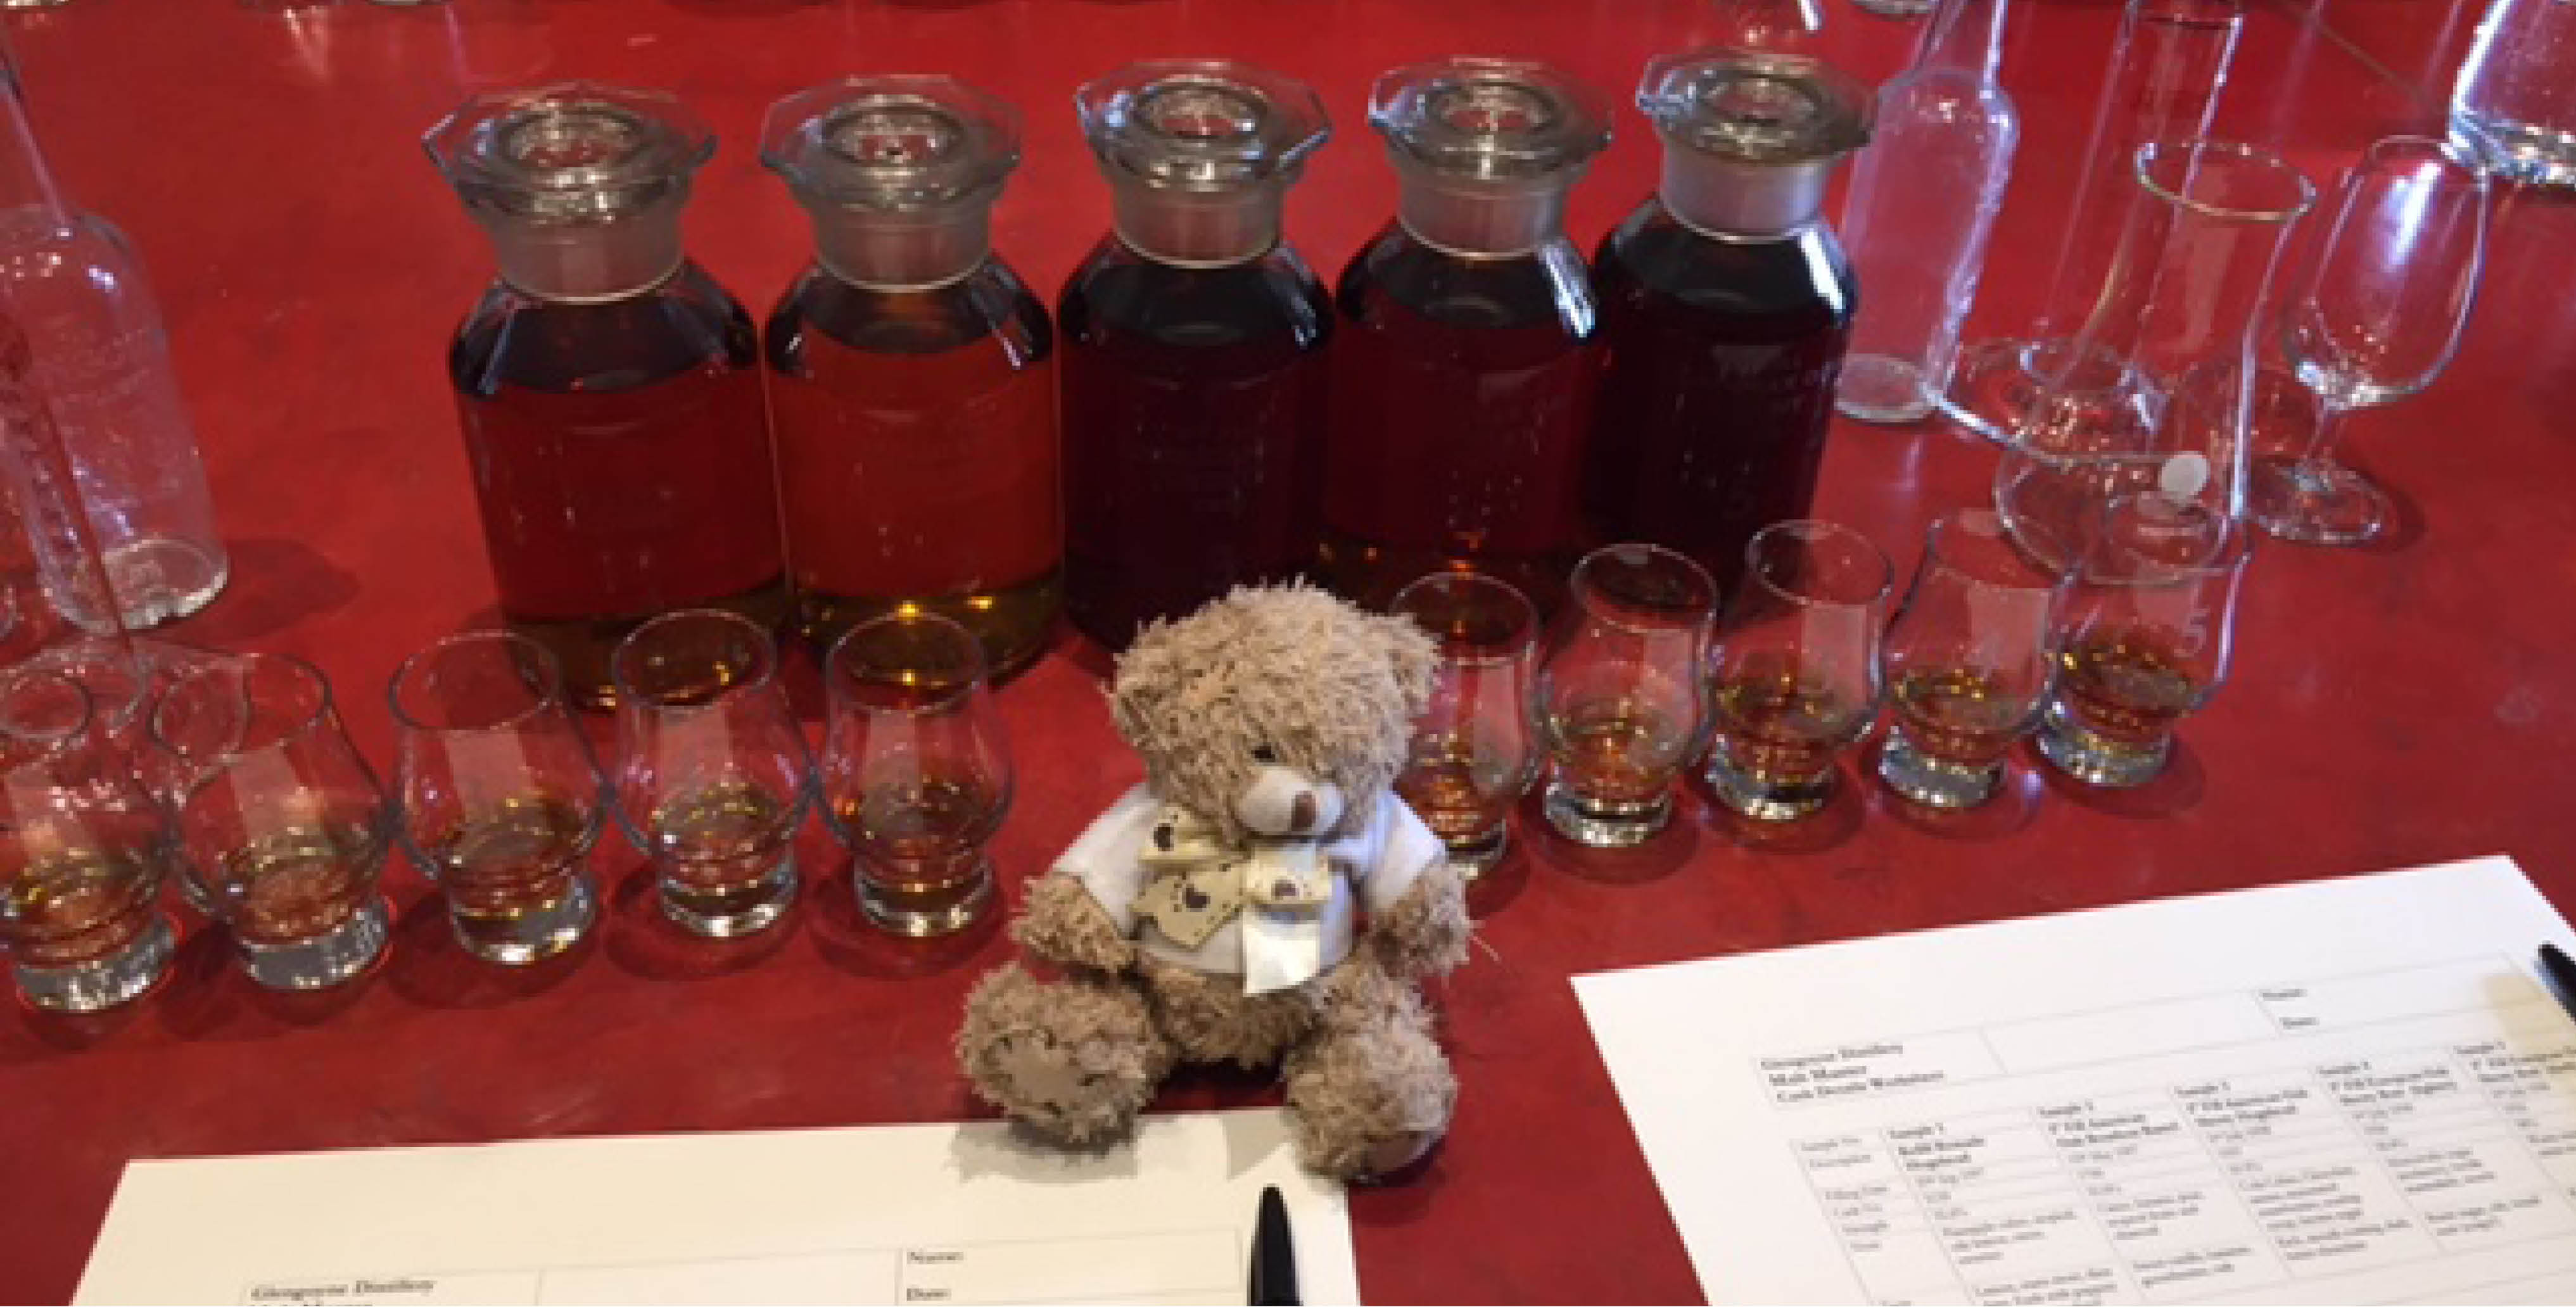 Blending whisky